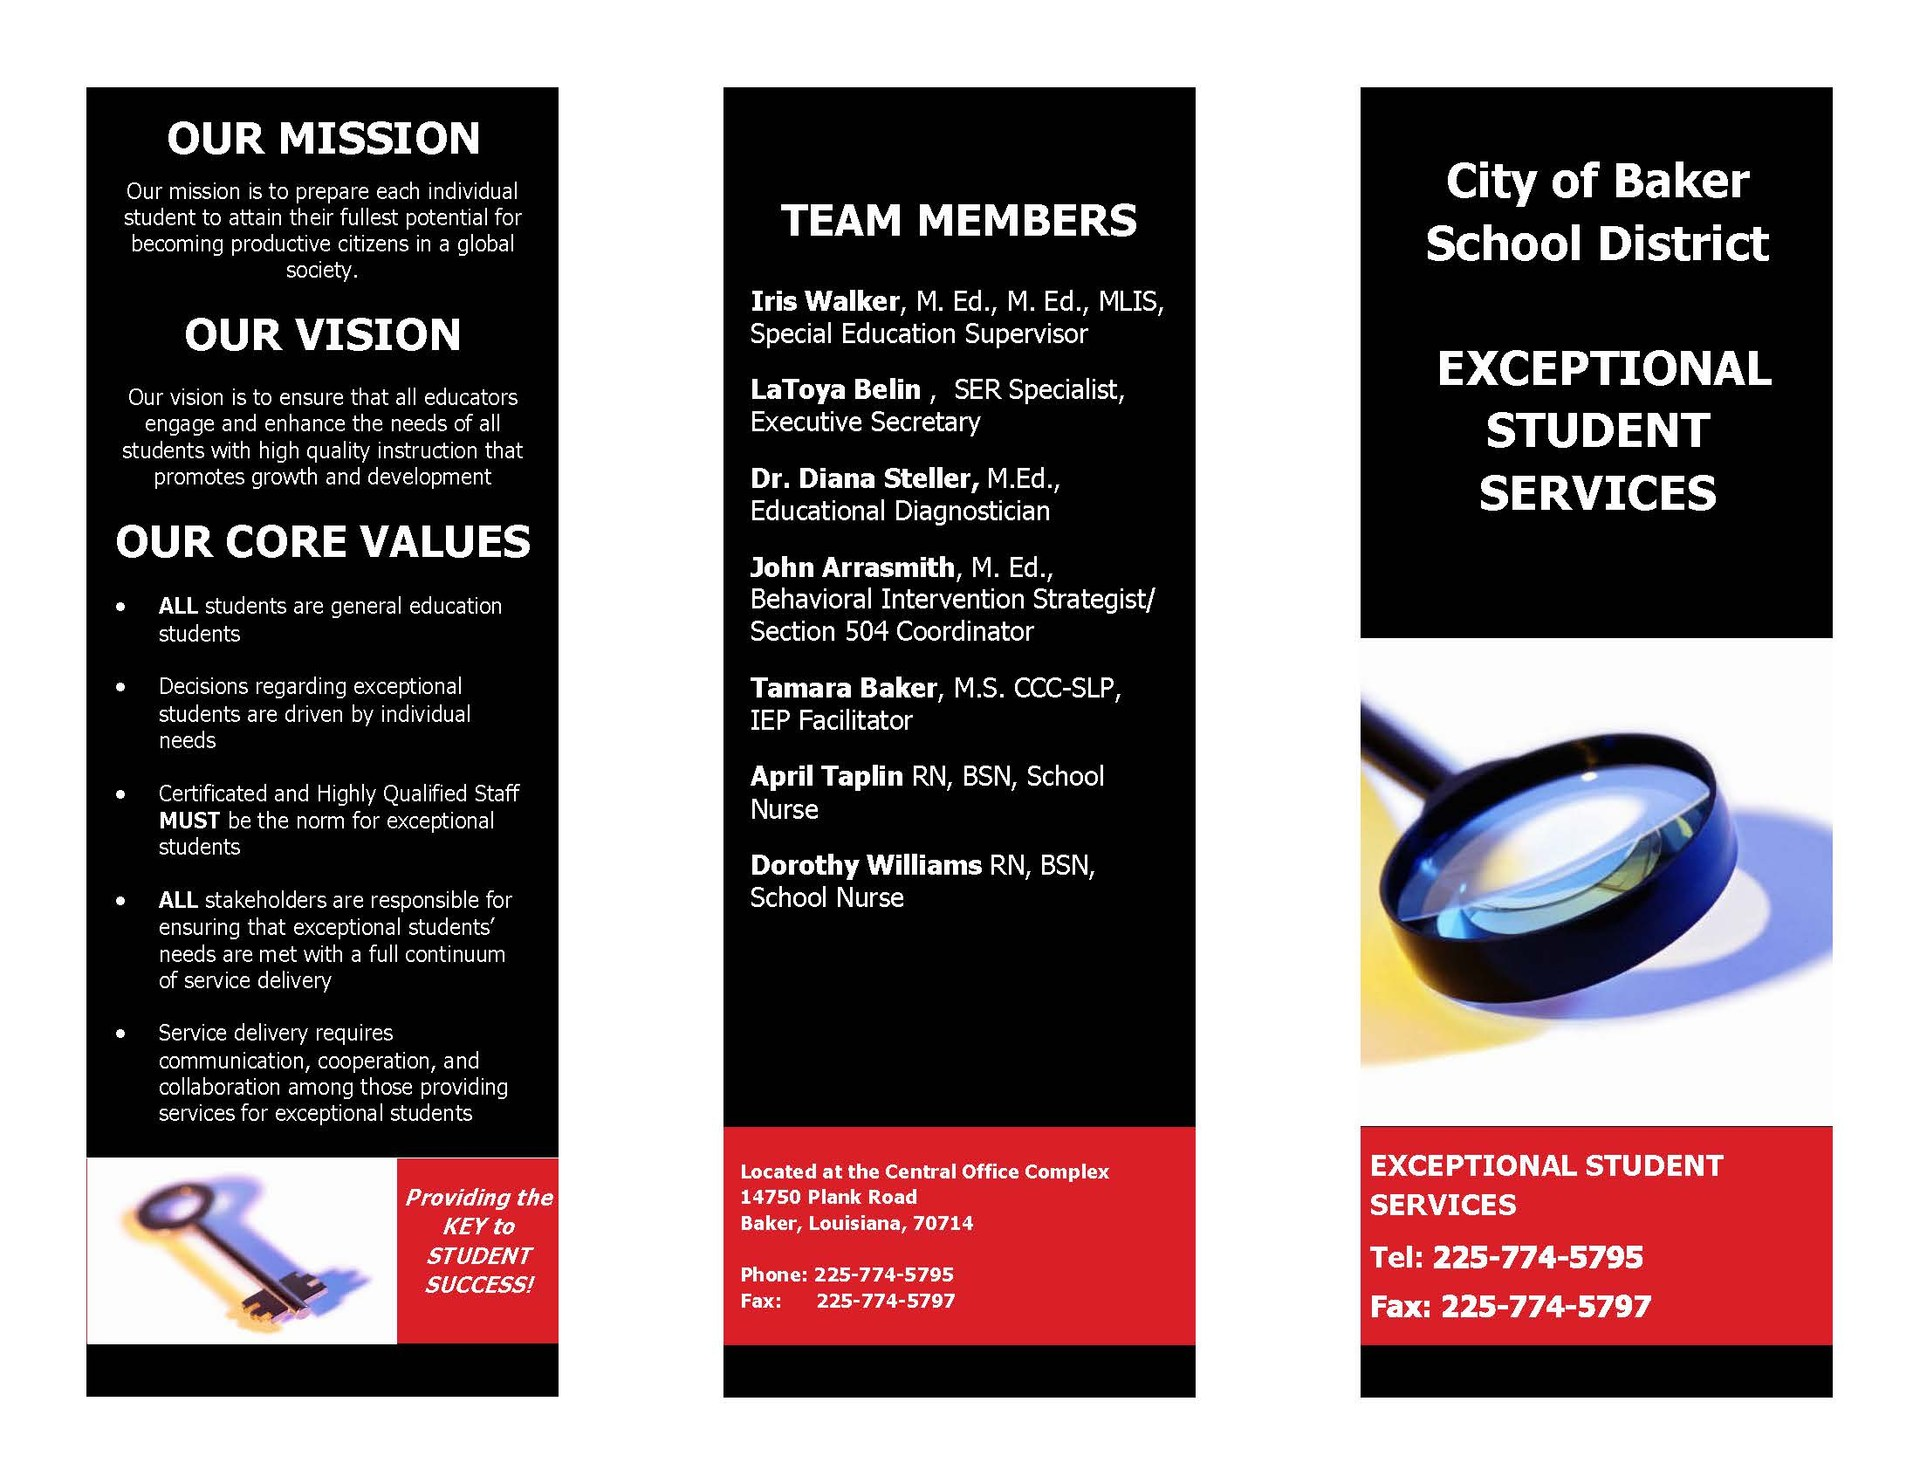 Page one of the Exceptional Student Services Brochure. It is a graphic